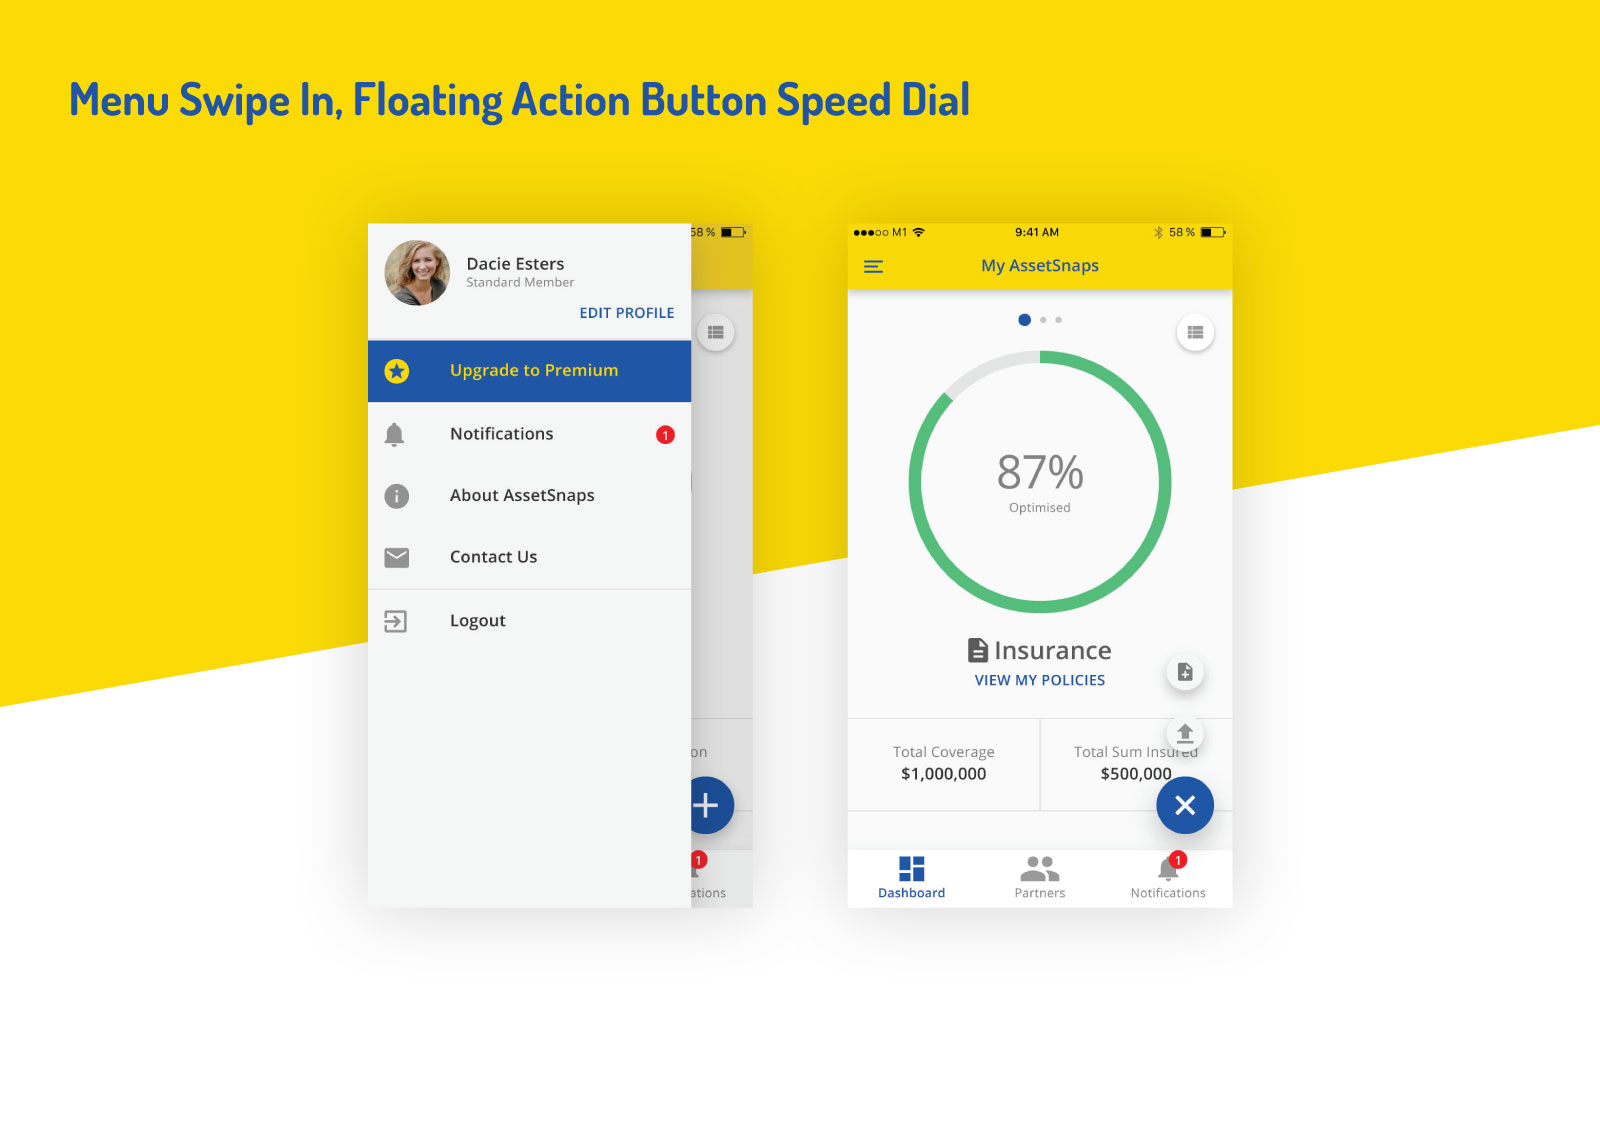 Asset Snaps - Menu Swipe In, Floating Action Button Speed Dial